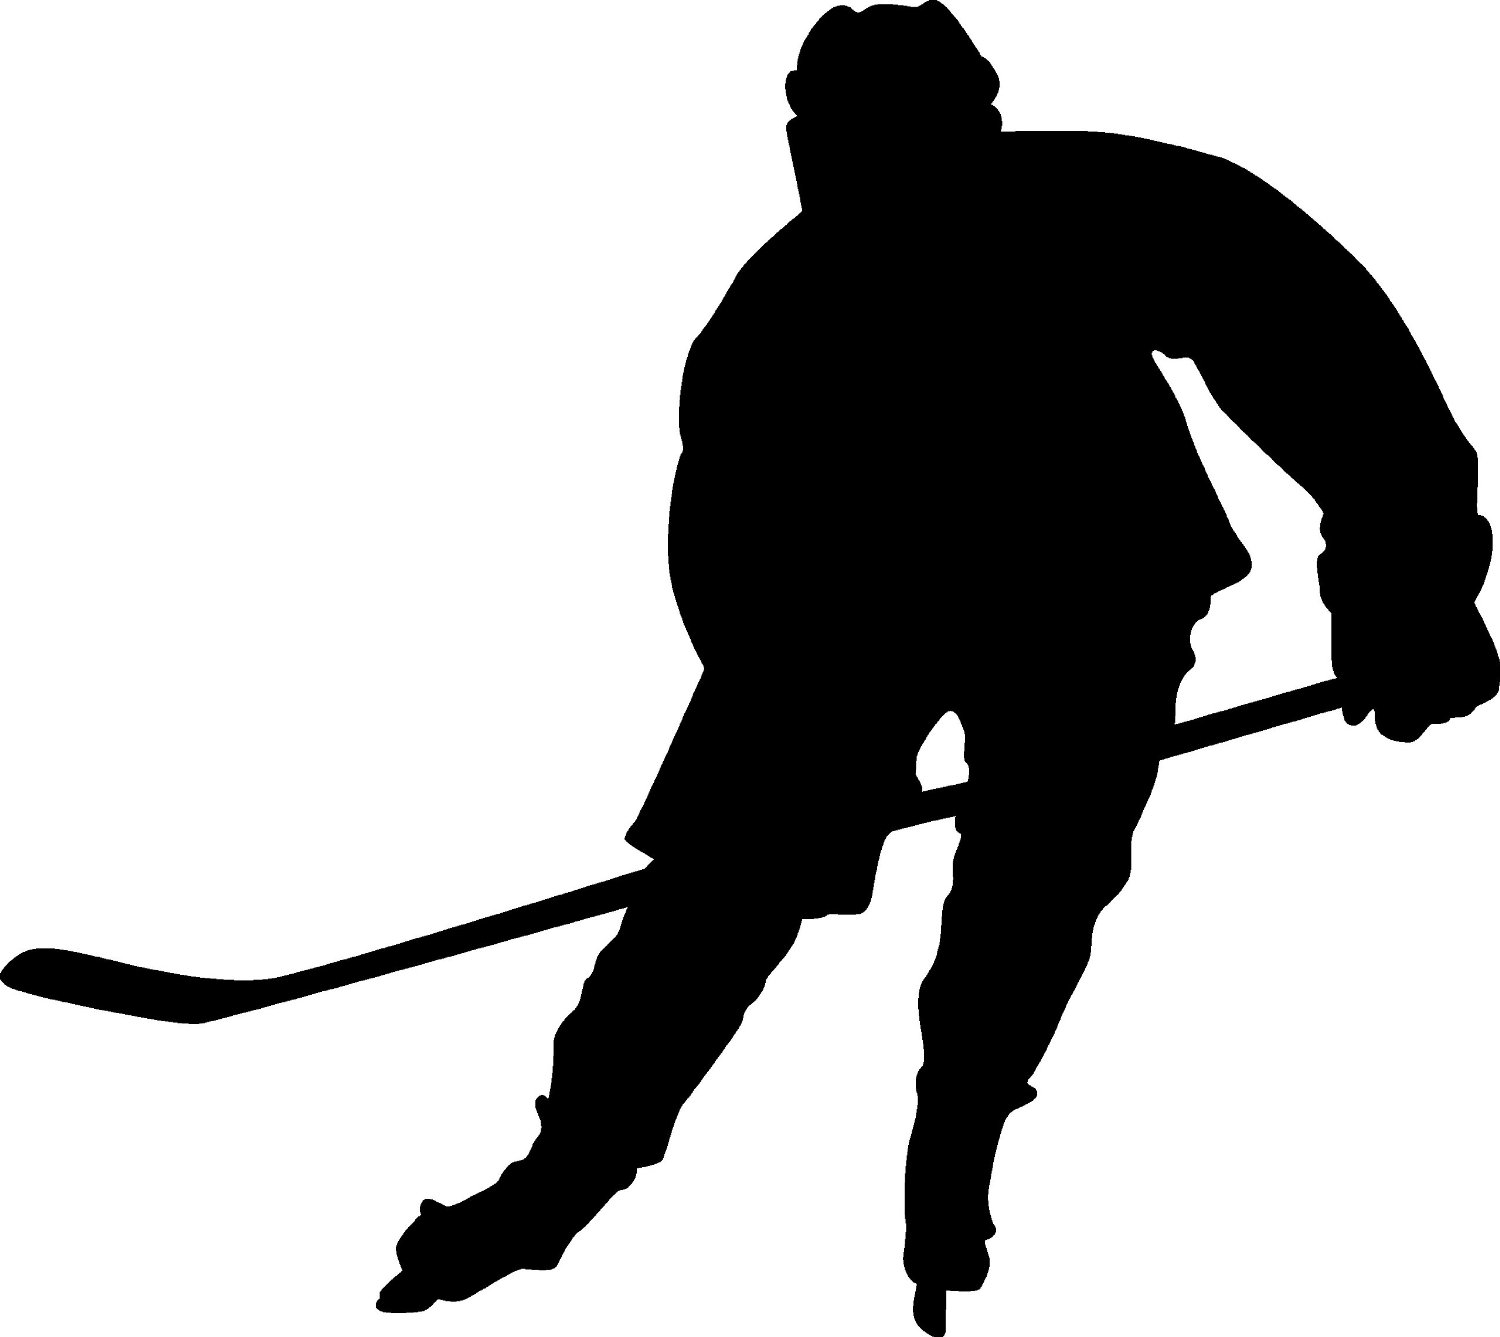 9 hockey player silhouette vector images hockey player lacrosse clipart images girls lacrosse clipart helmet images